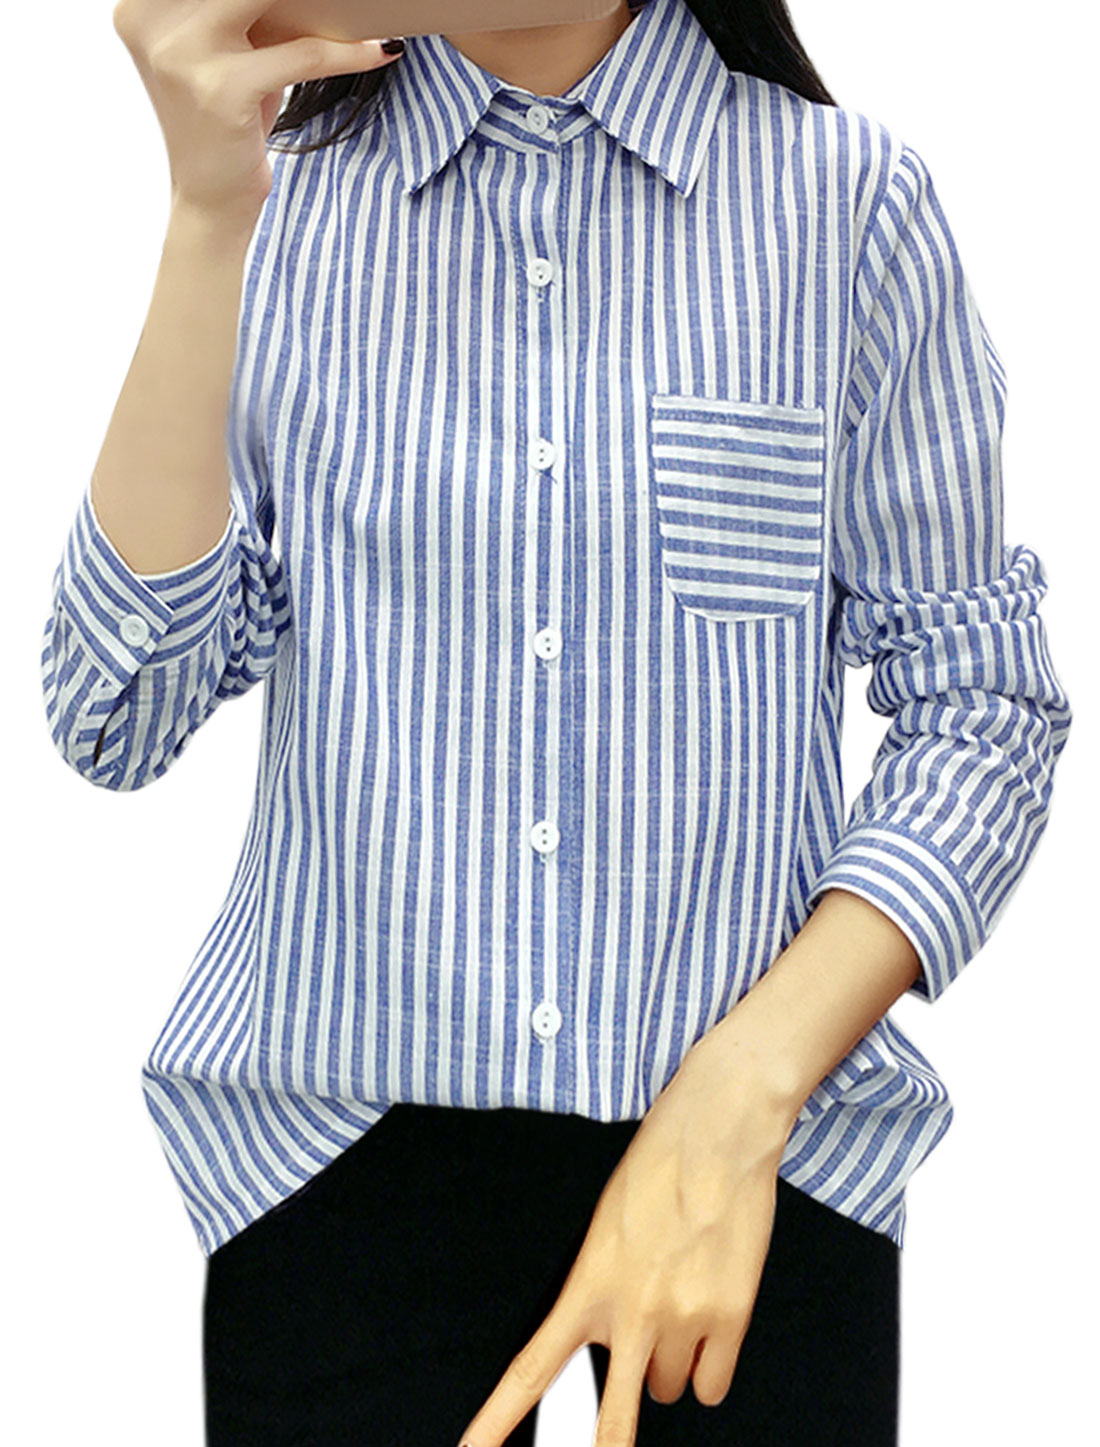 Women Stripes Single Breasted Long Sleeves Slim Fit Shirt Blue XS